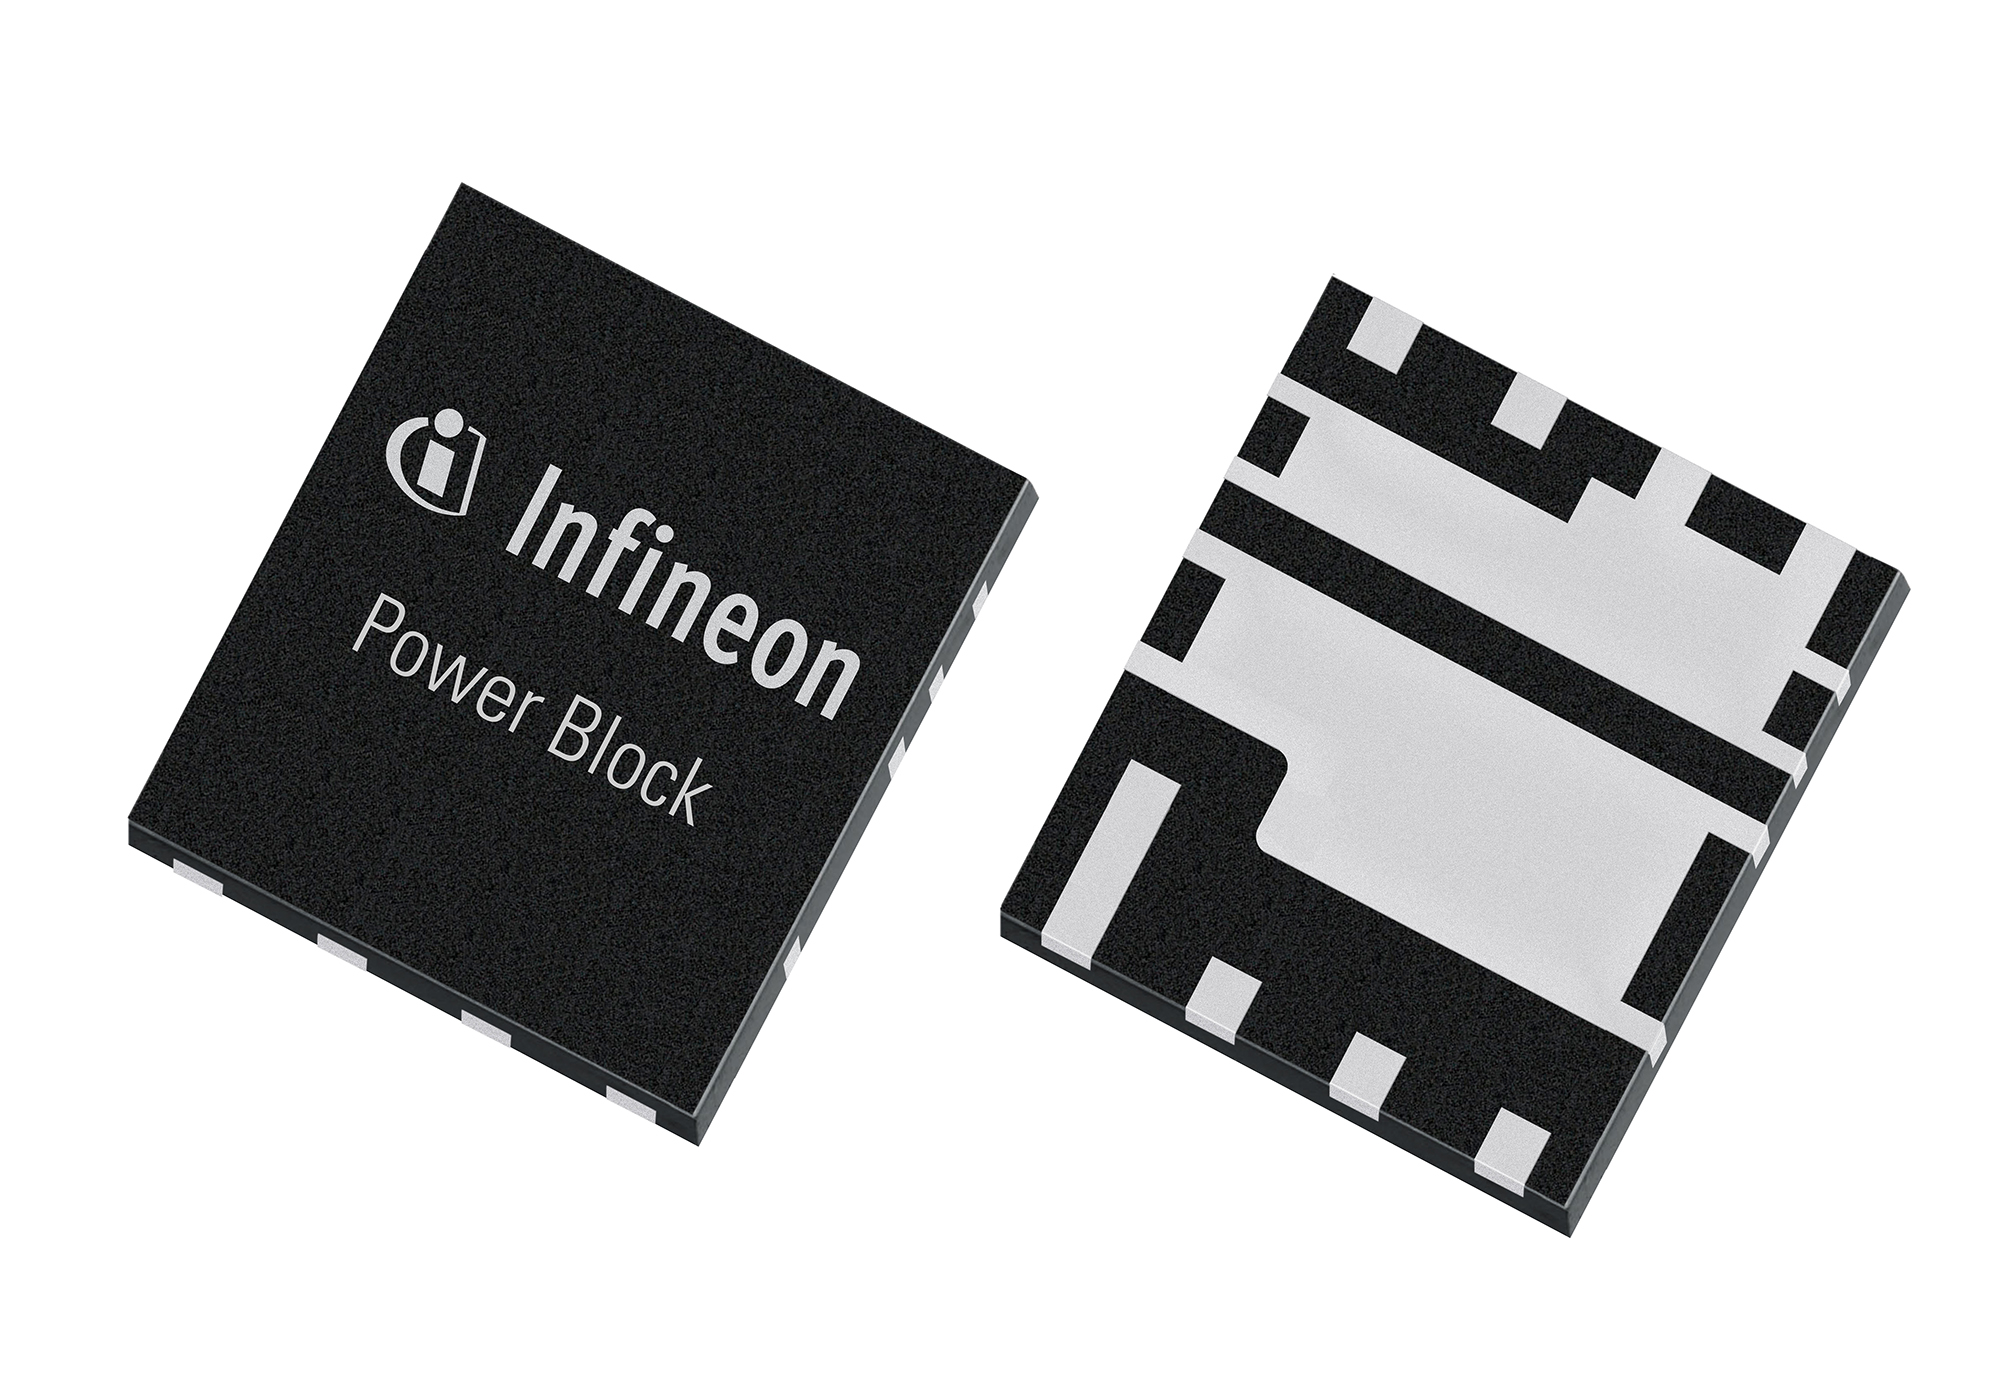 Infineon Introduces Optimos 5 25v And 30v Product Family Exceeding Coupling Fan Lighting Switches Home Improvement Stack Exchange Power Block